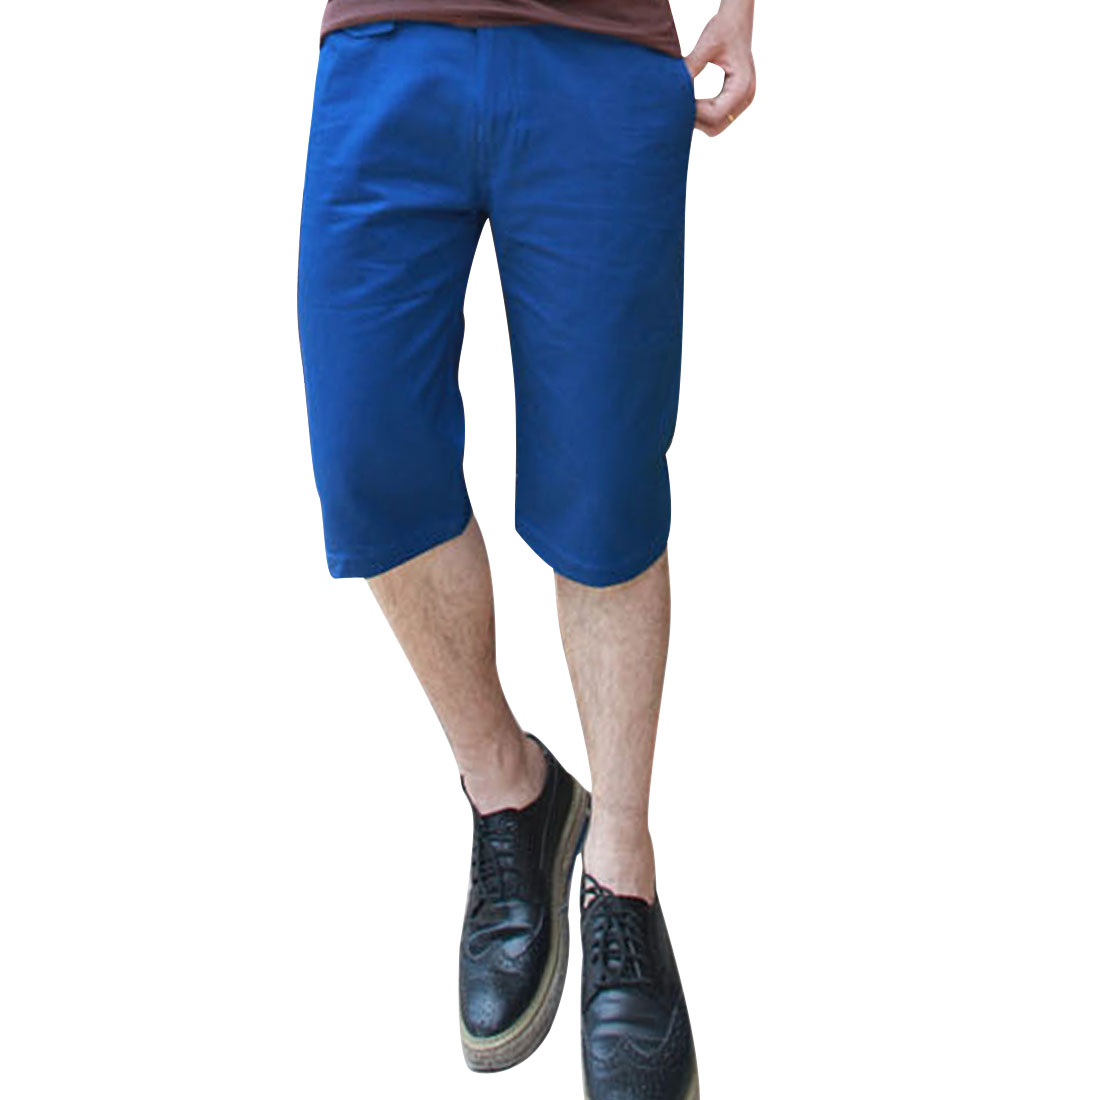 Men Up Button Front Zipper Fly Hip Pockets Shorts Royal Blue W34